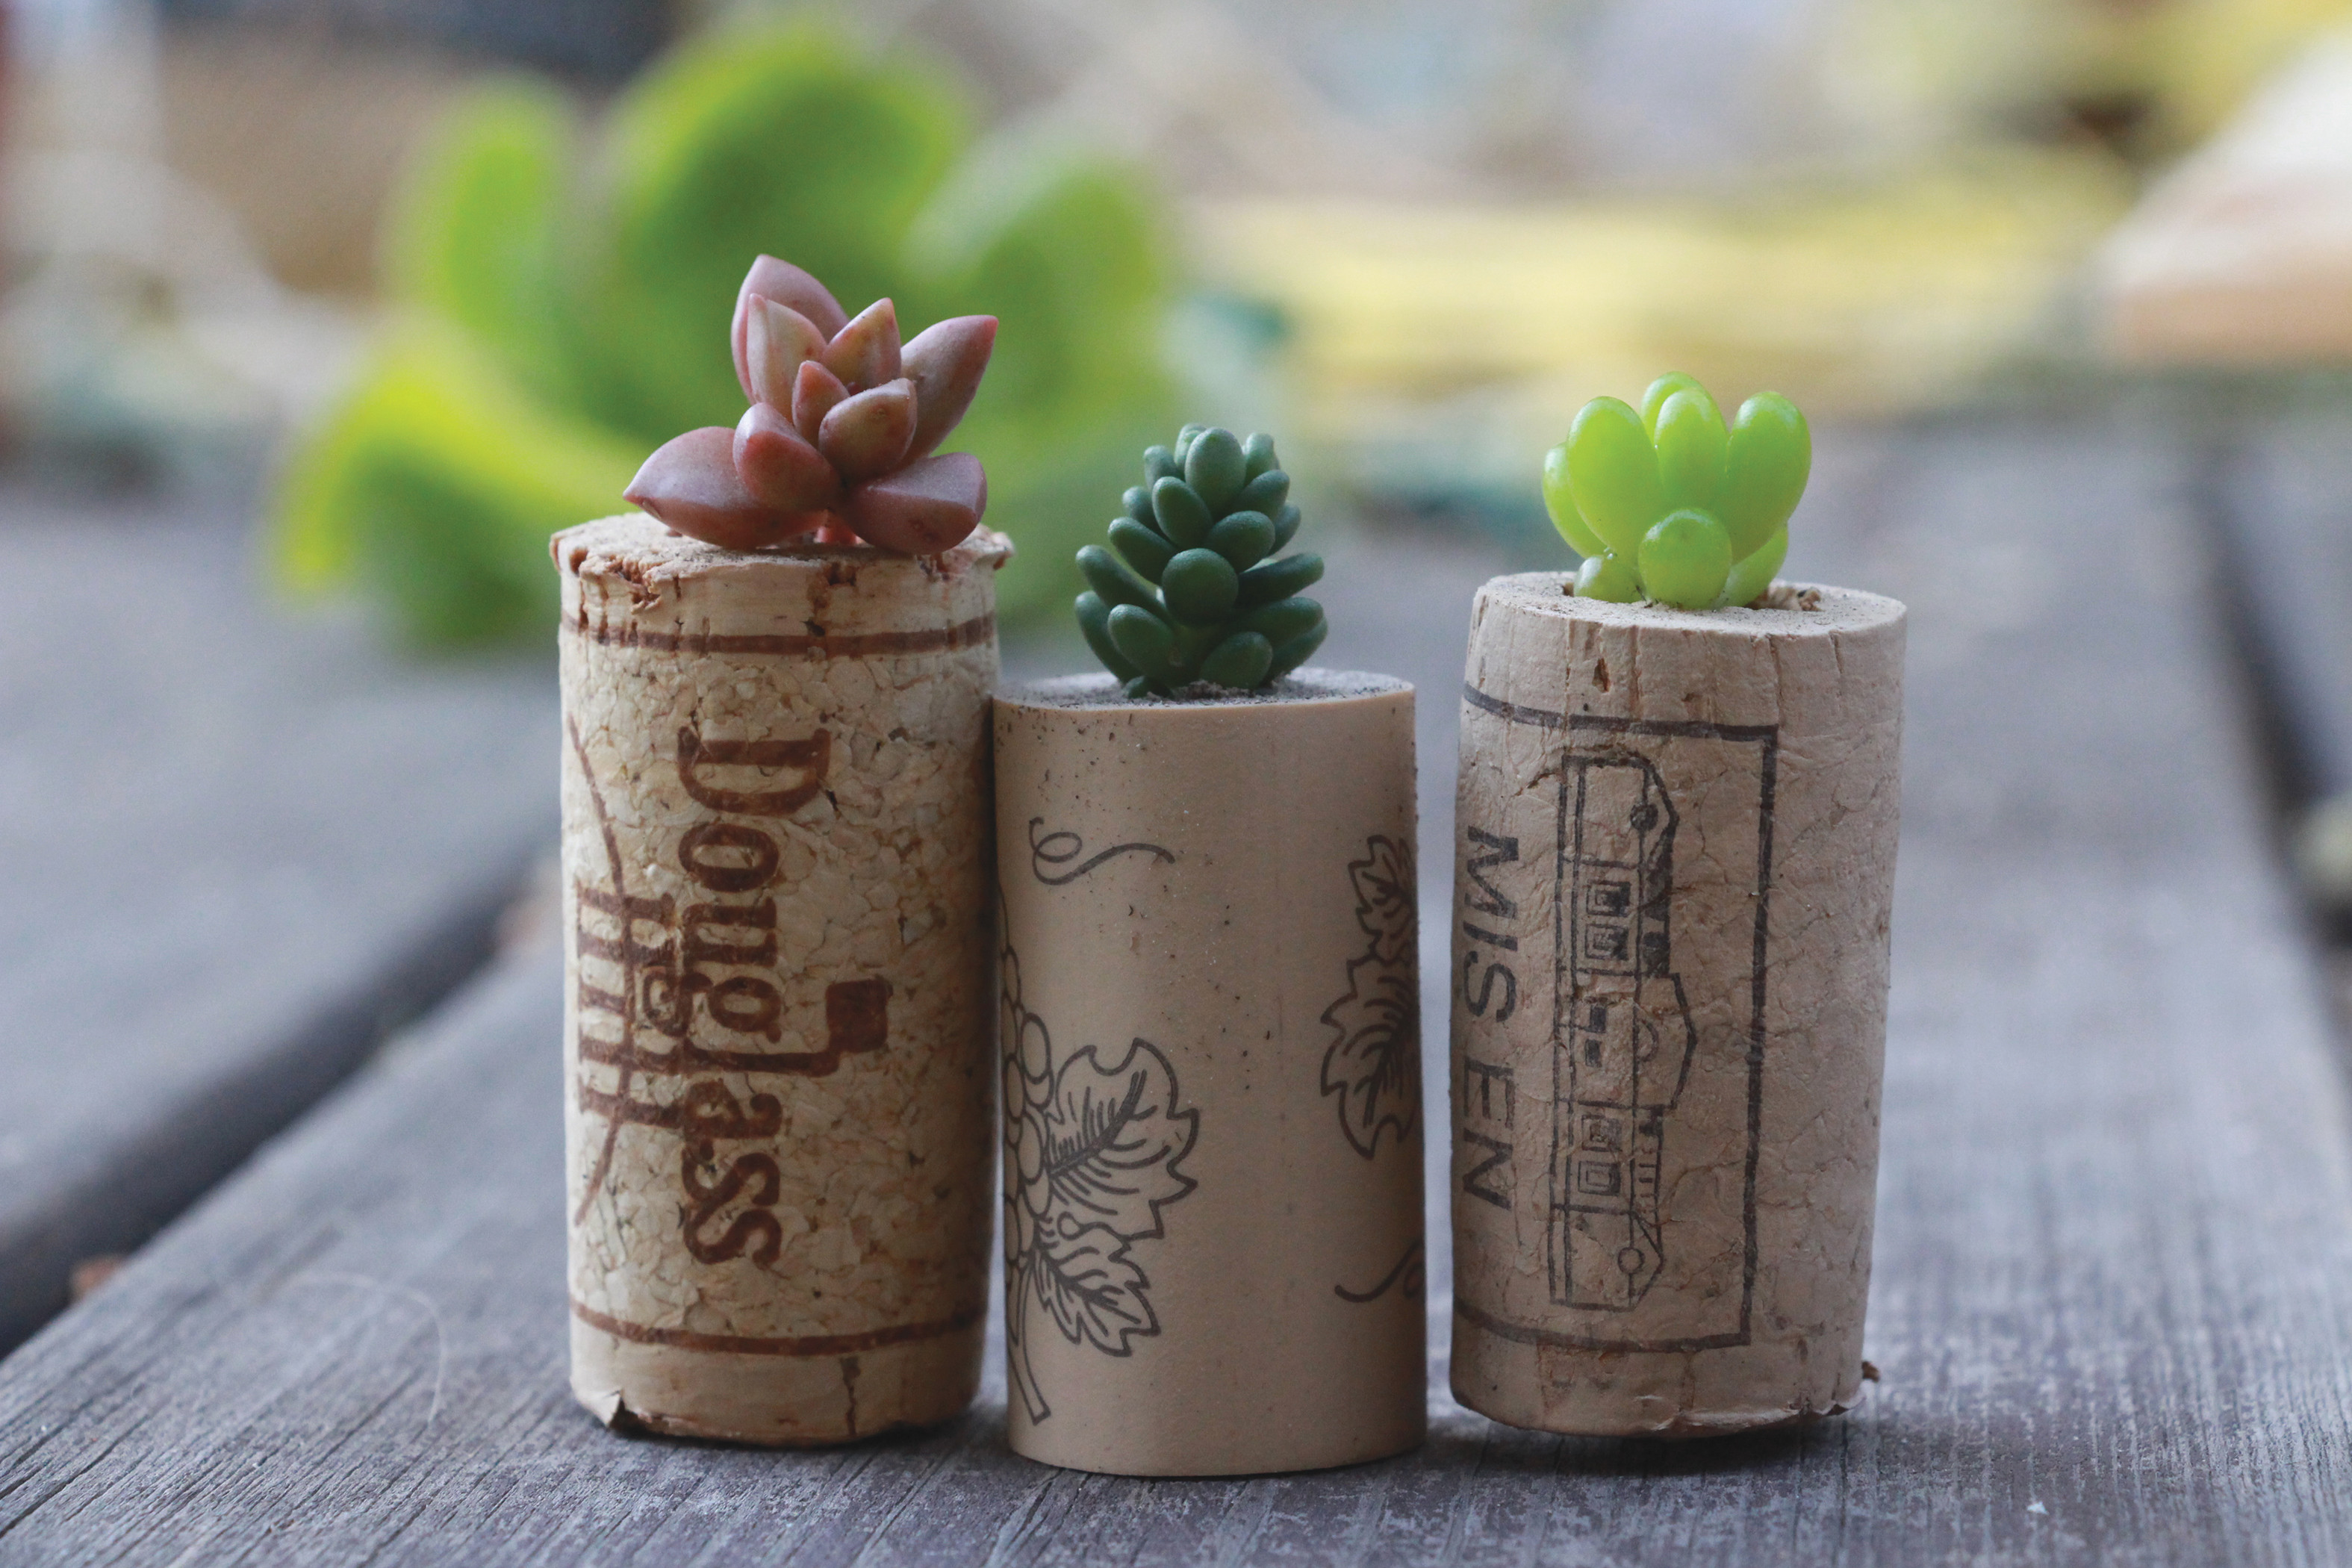 Diy succulent wine cork planters do it yourself projects lonny diy succulent wine cork planters solutioingenieria Image collections